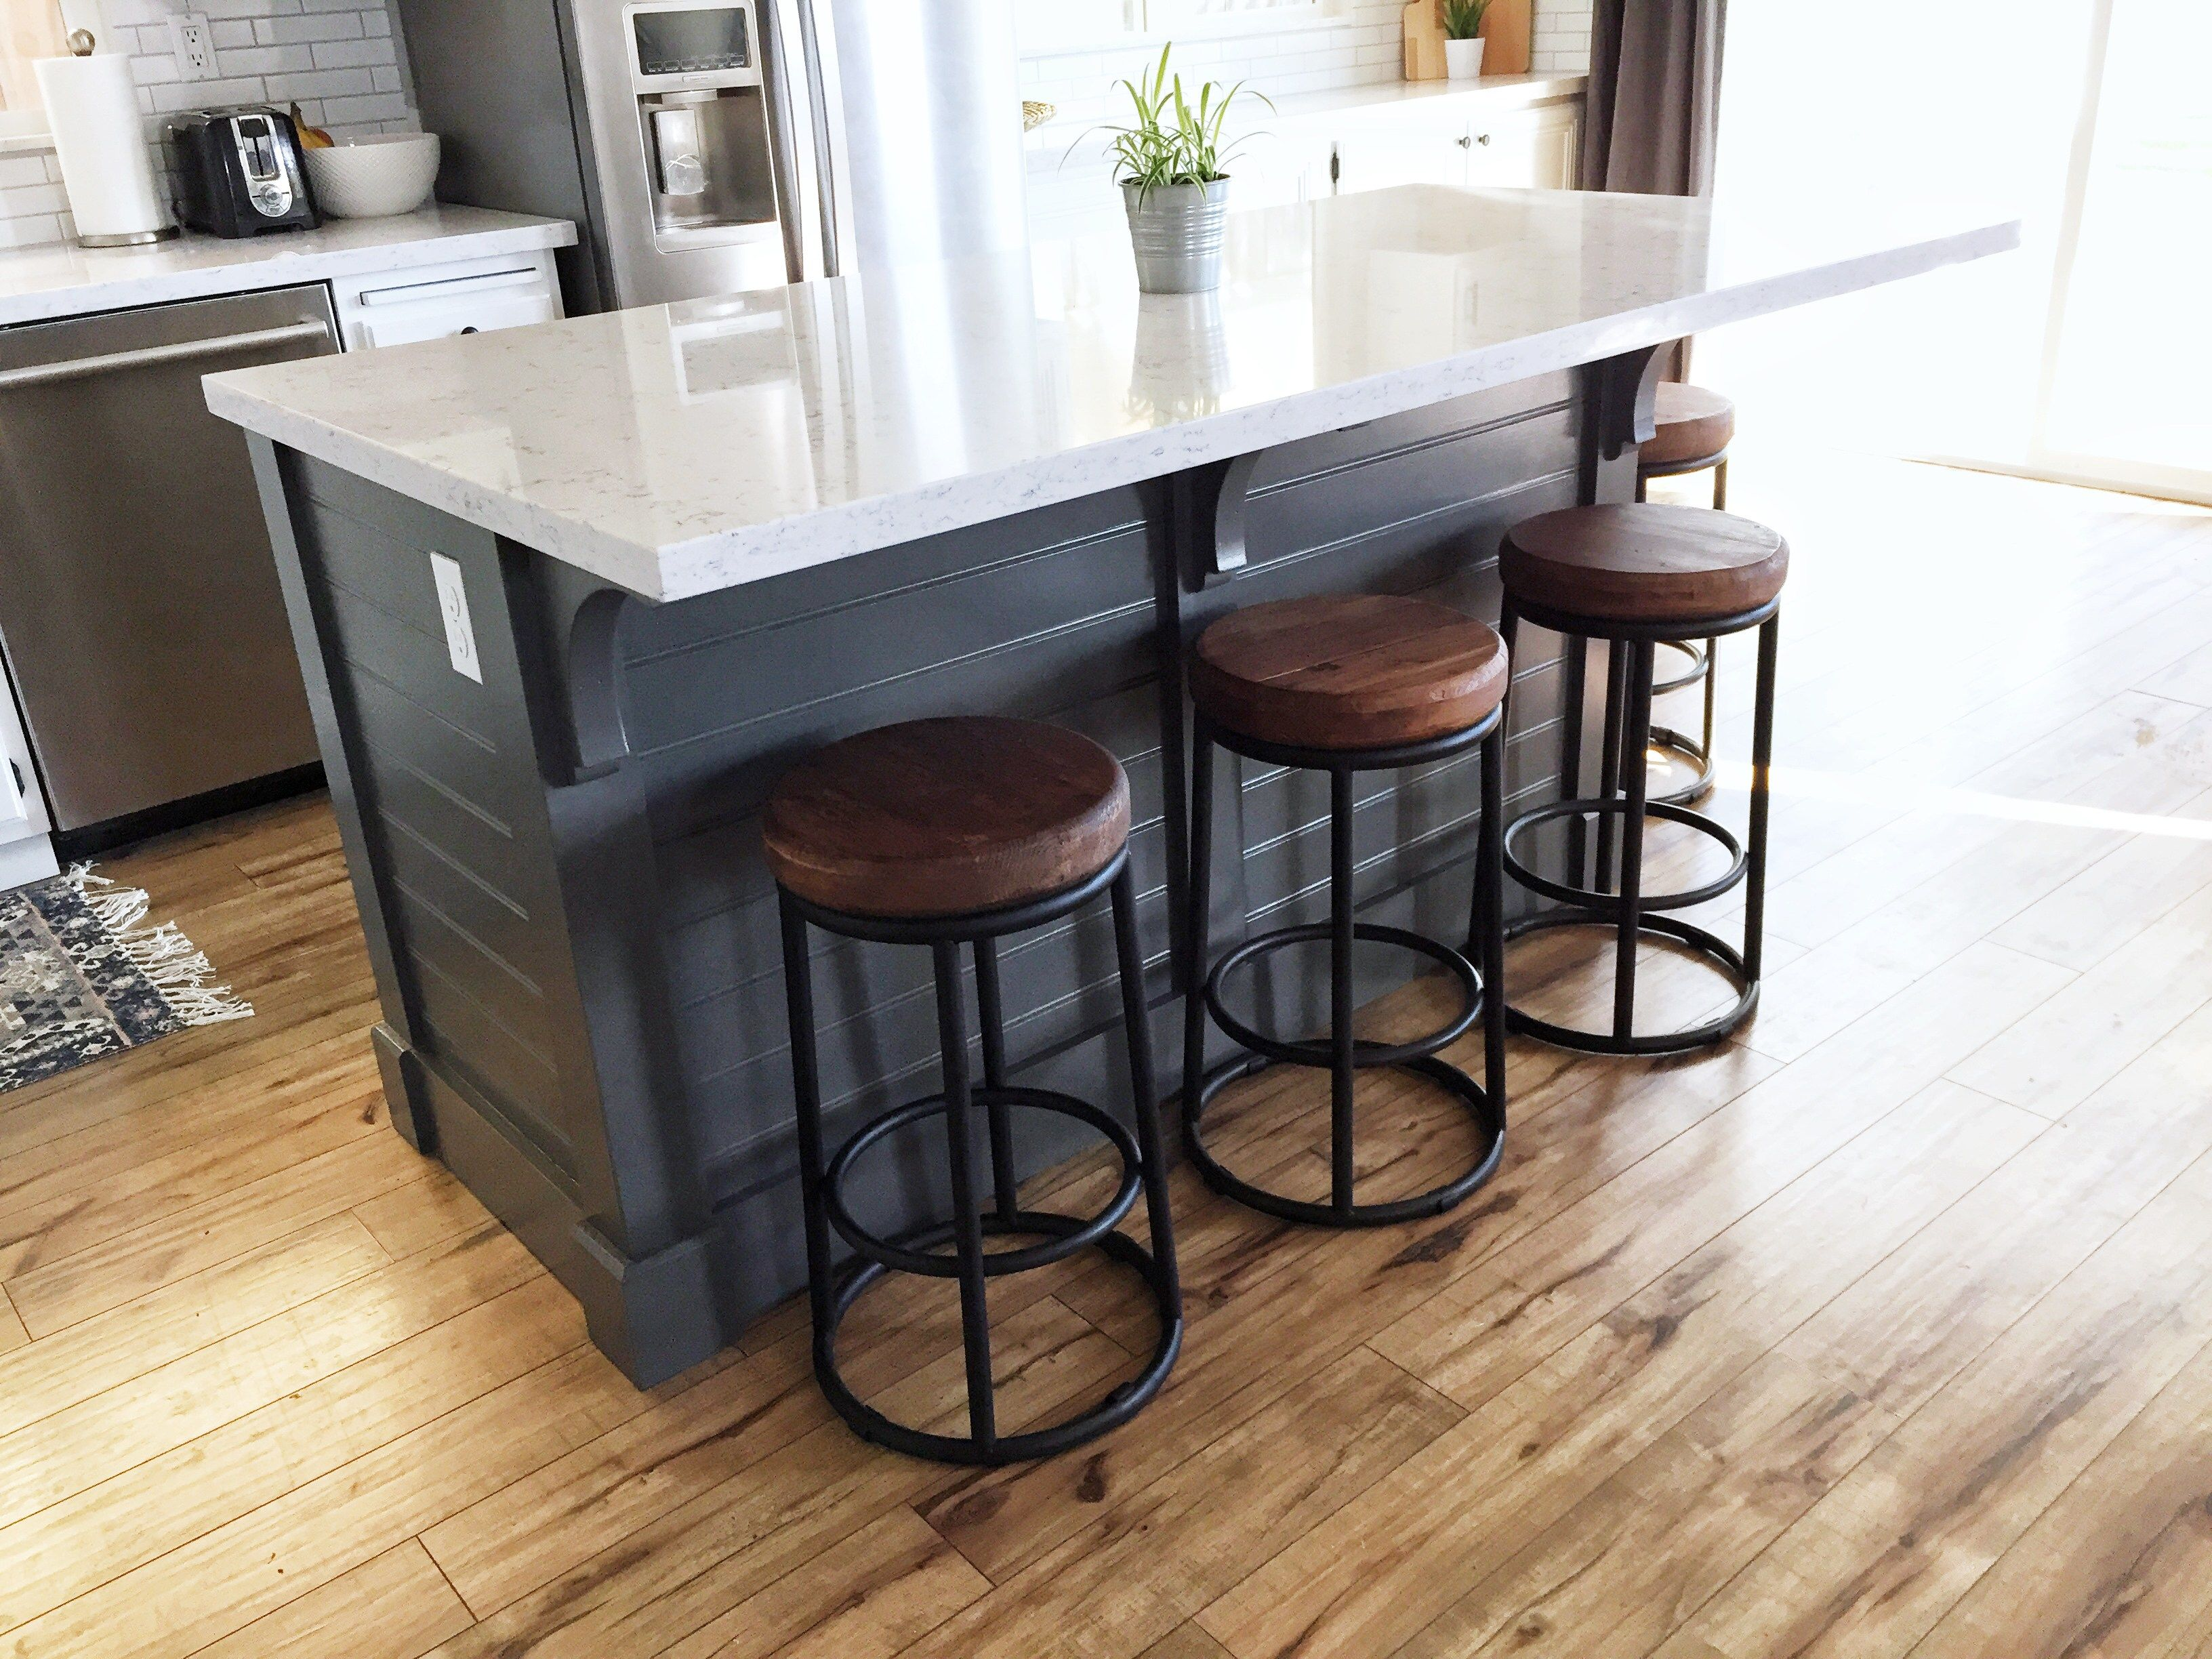 A DIY Kitchen Island: Make it yourself and Save Big | Home ...